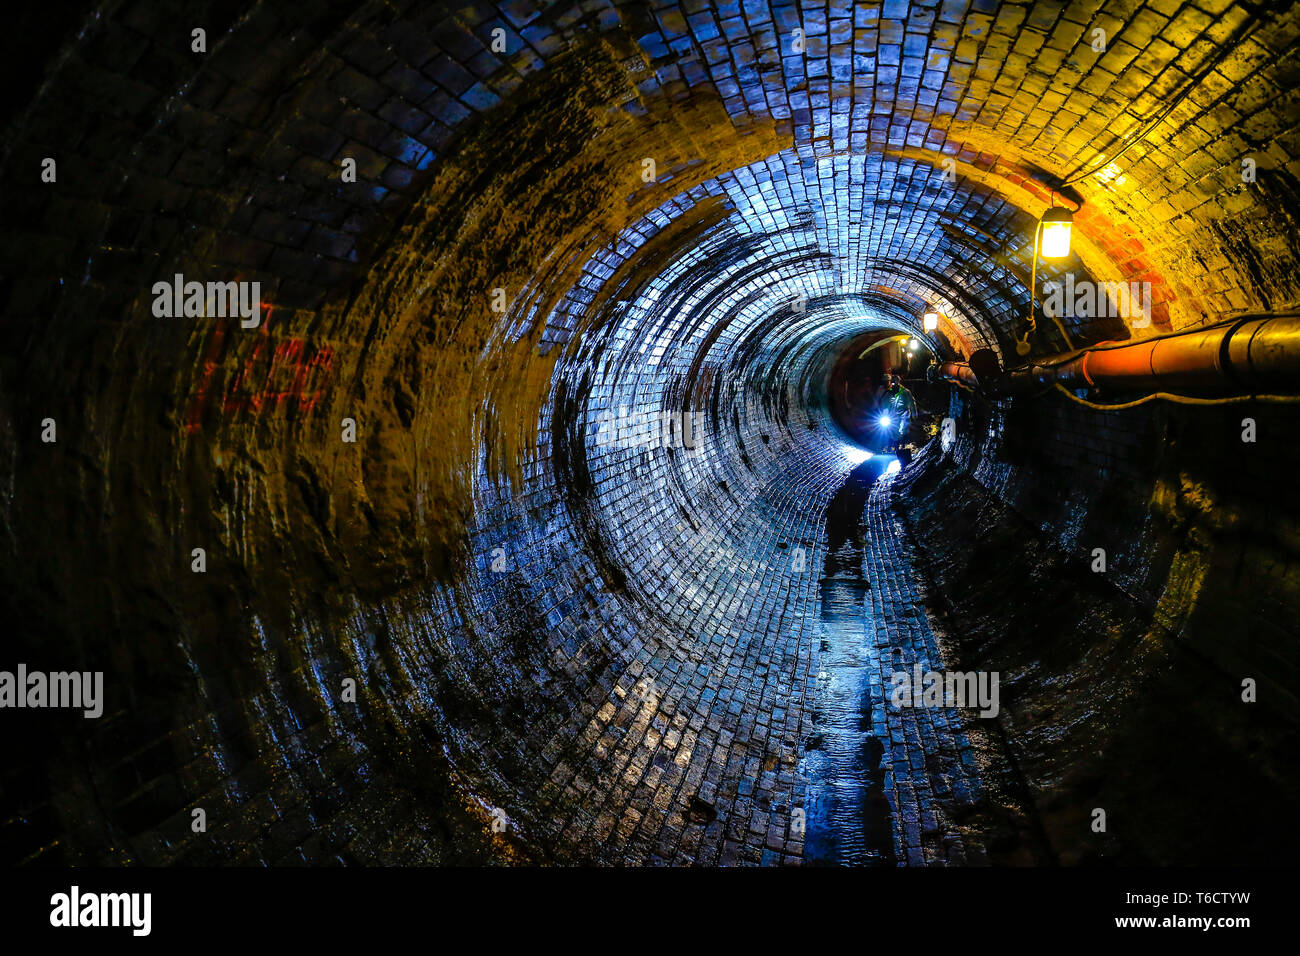 Ruhr area, North Rhine-Westphalia, Germany - Topic picture sewer network transmission, inspection of an old, bricked sewer in need of rehabilitation.  - Stock Image